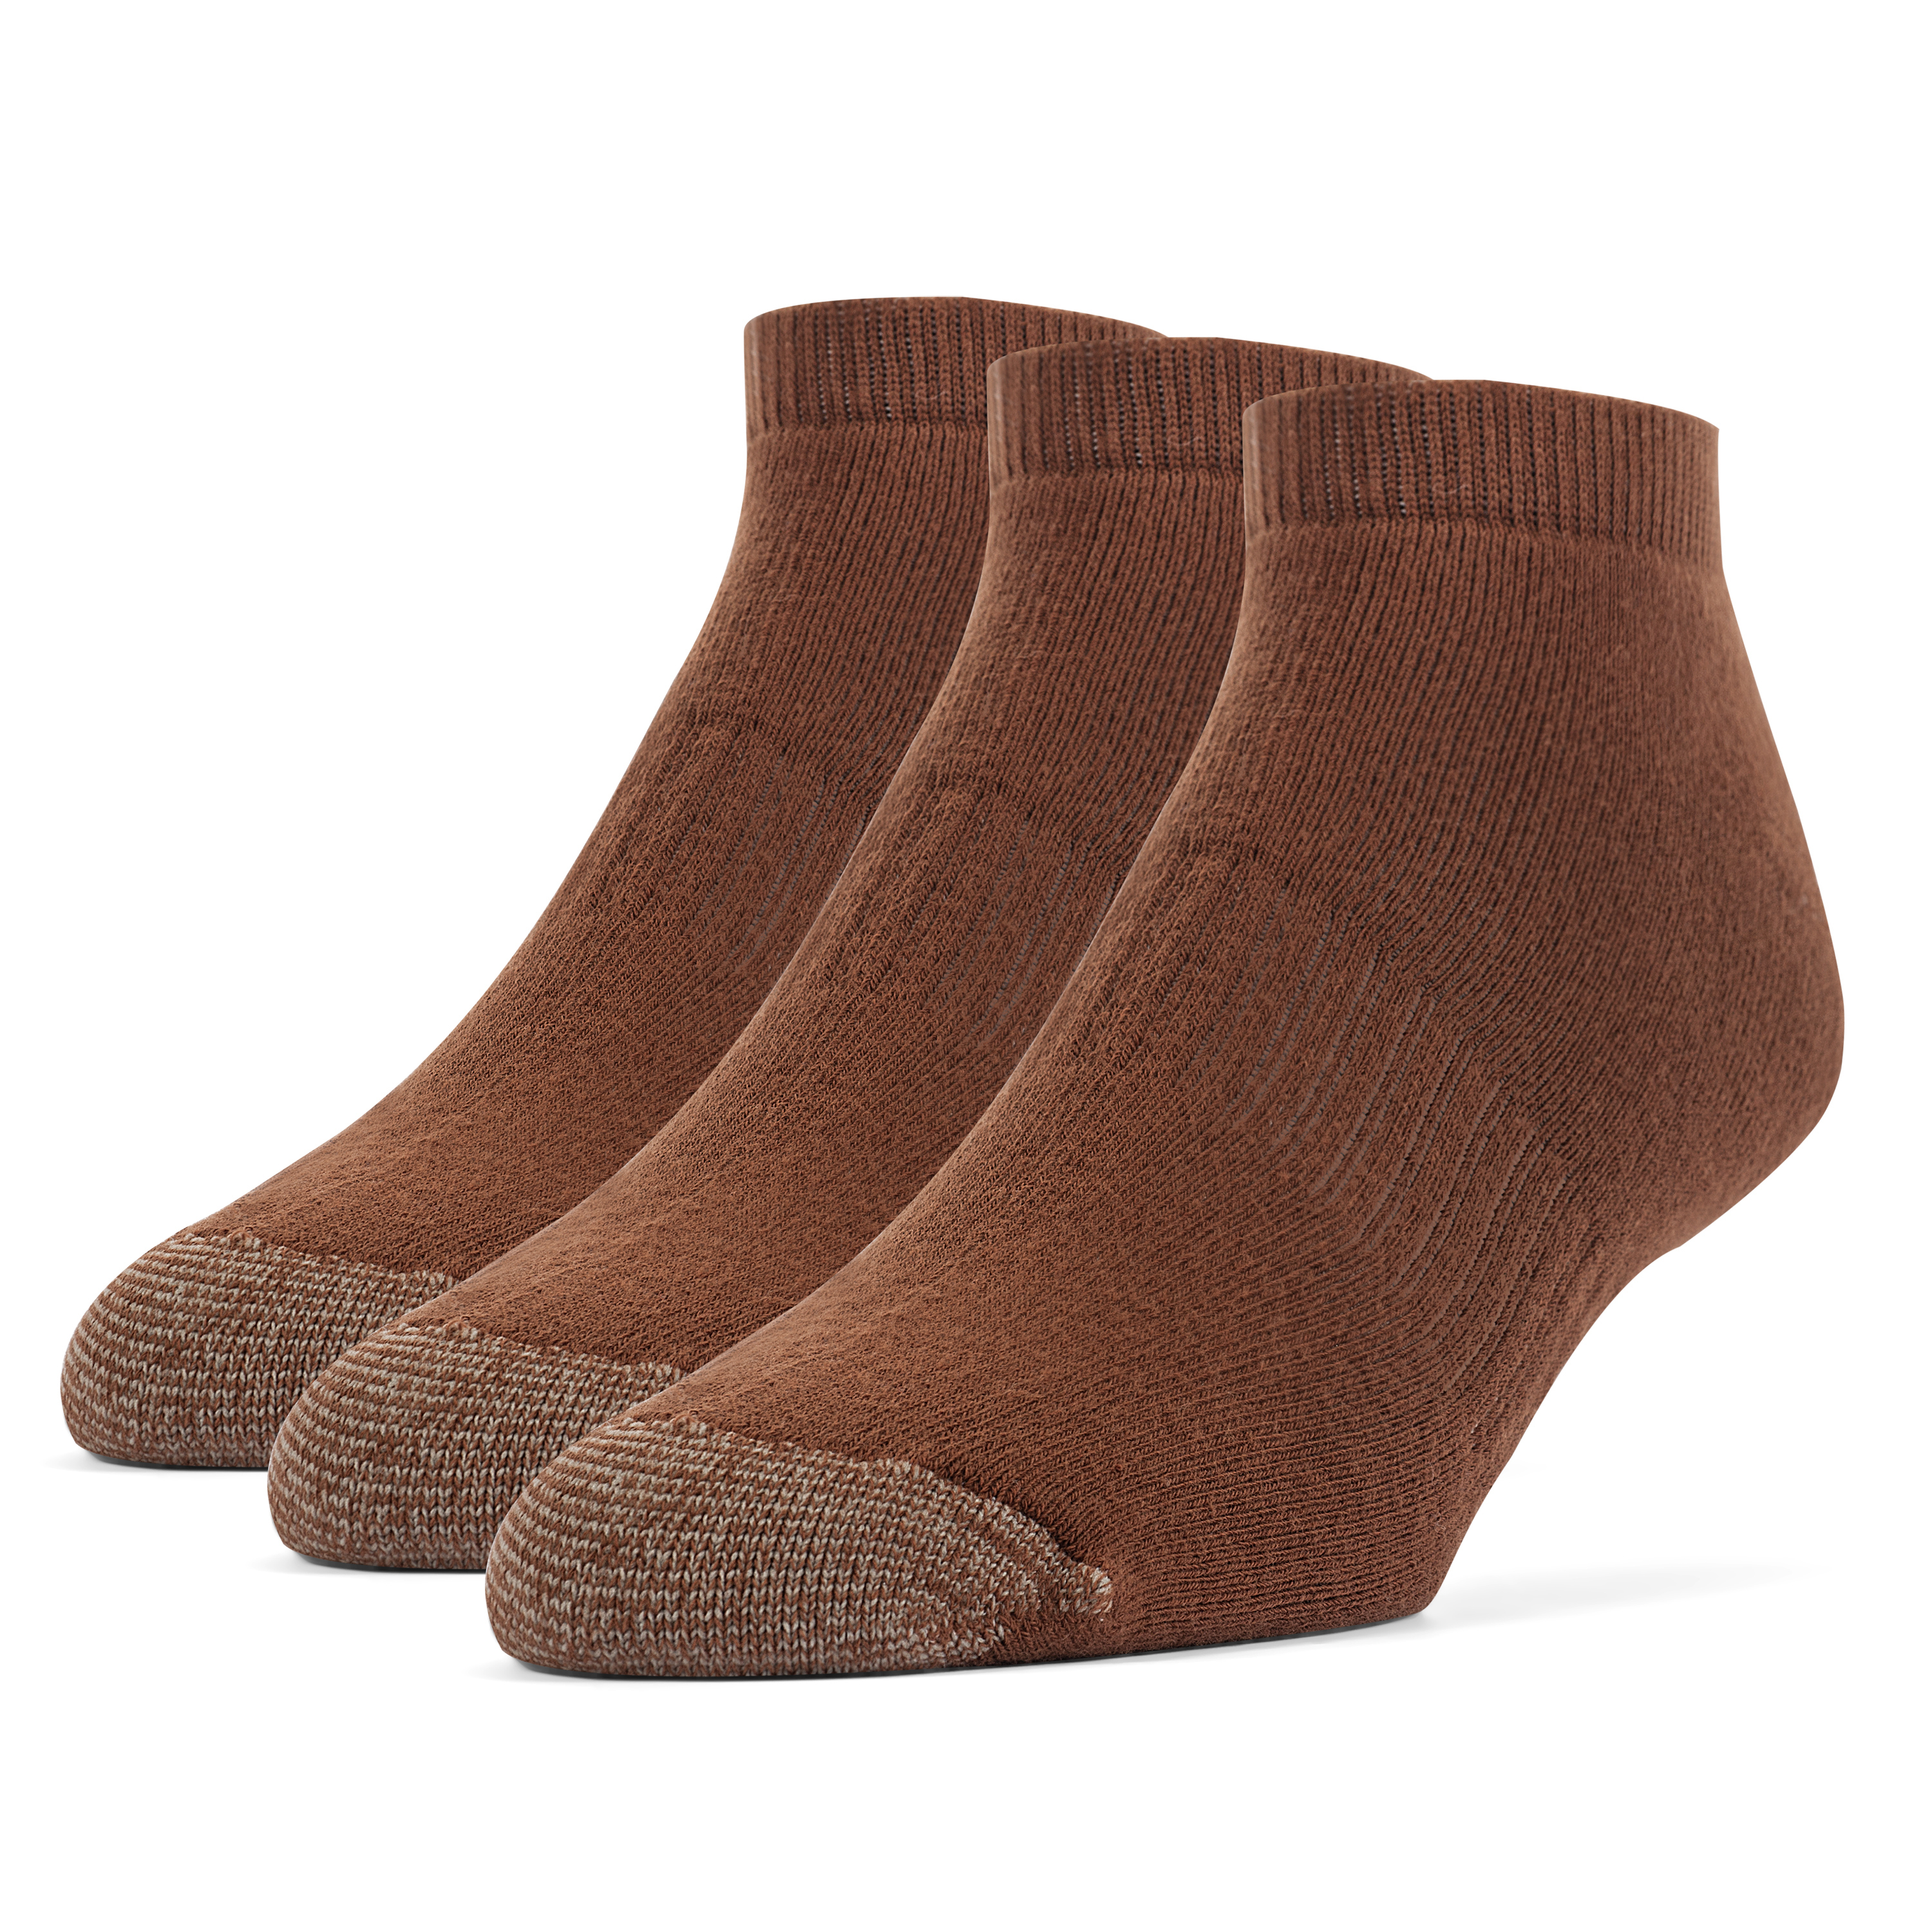 Men's Cotton ExtraSoft Low Cut Cushion Socks - 3 Pairs